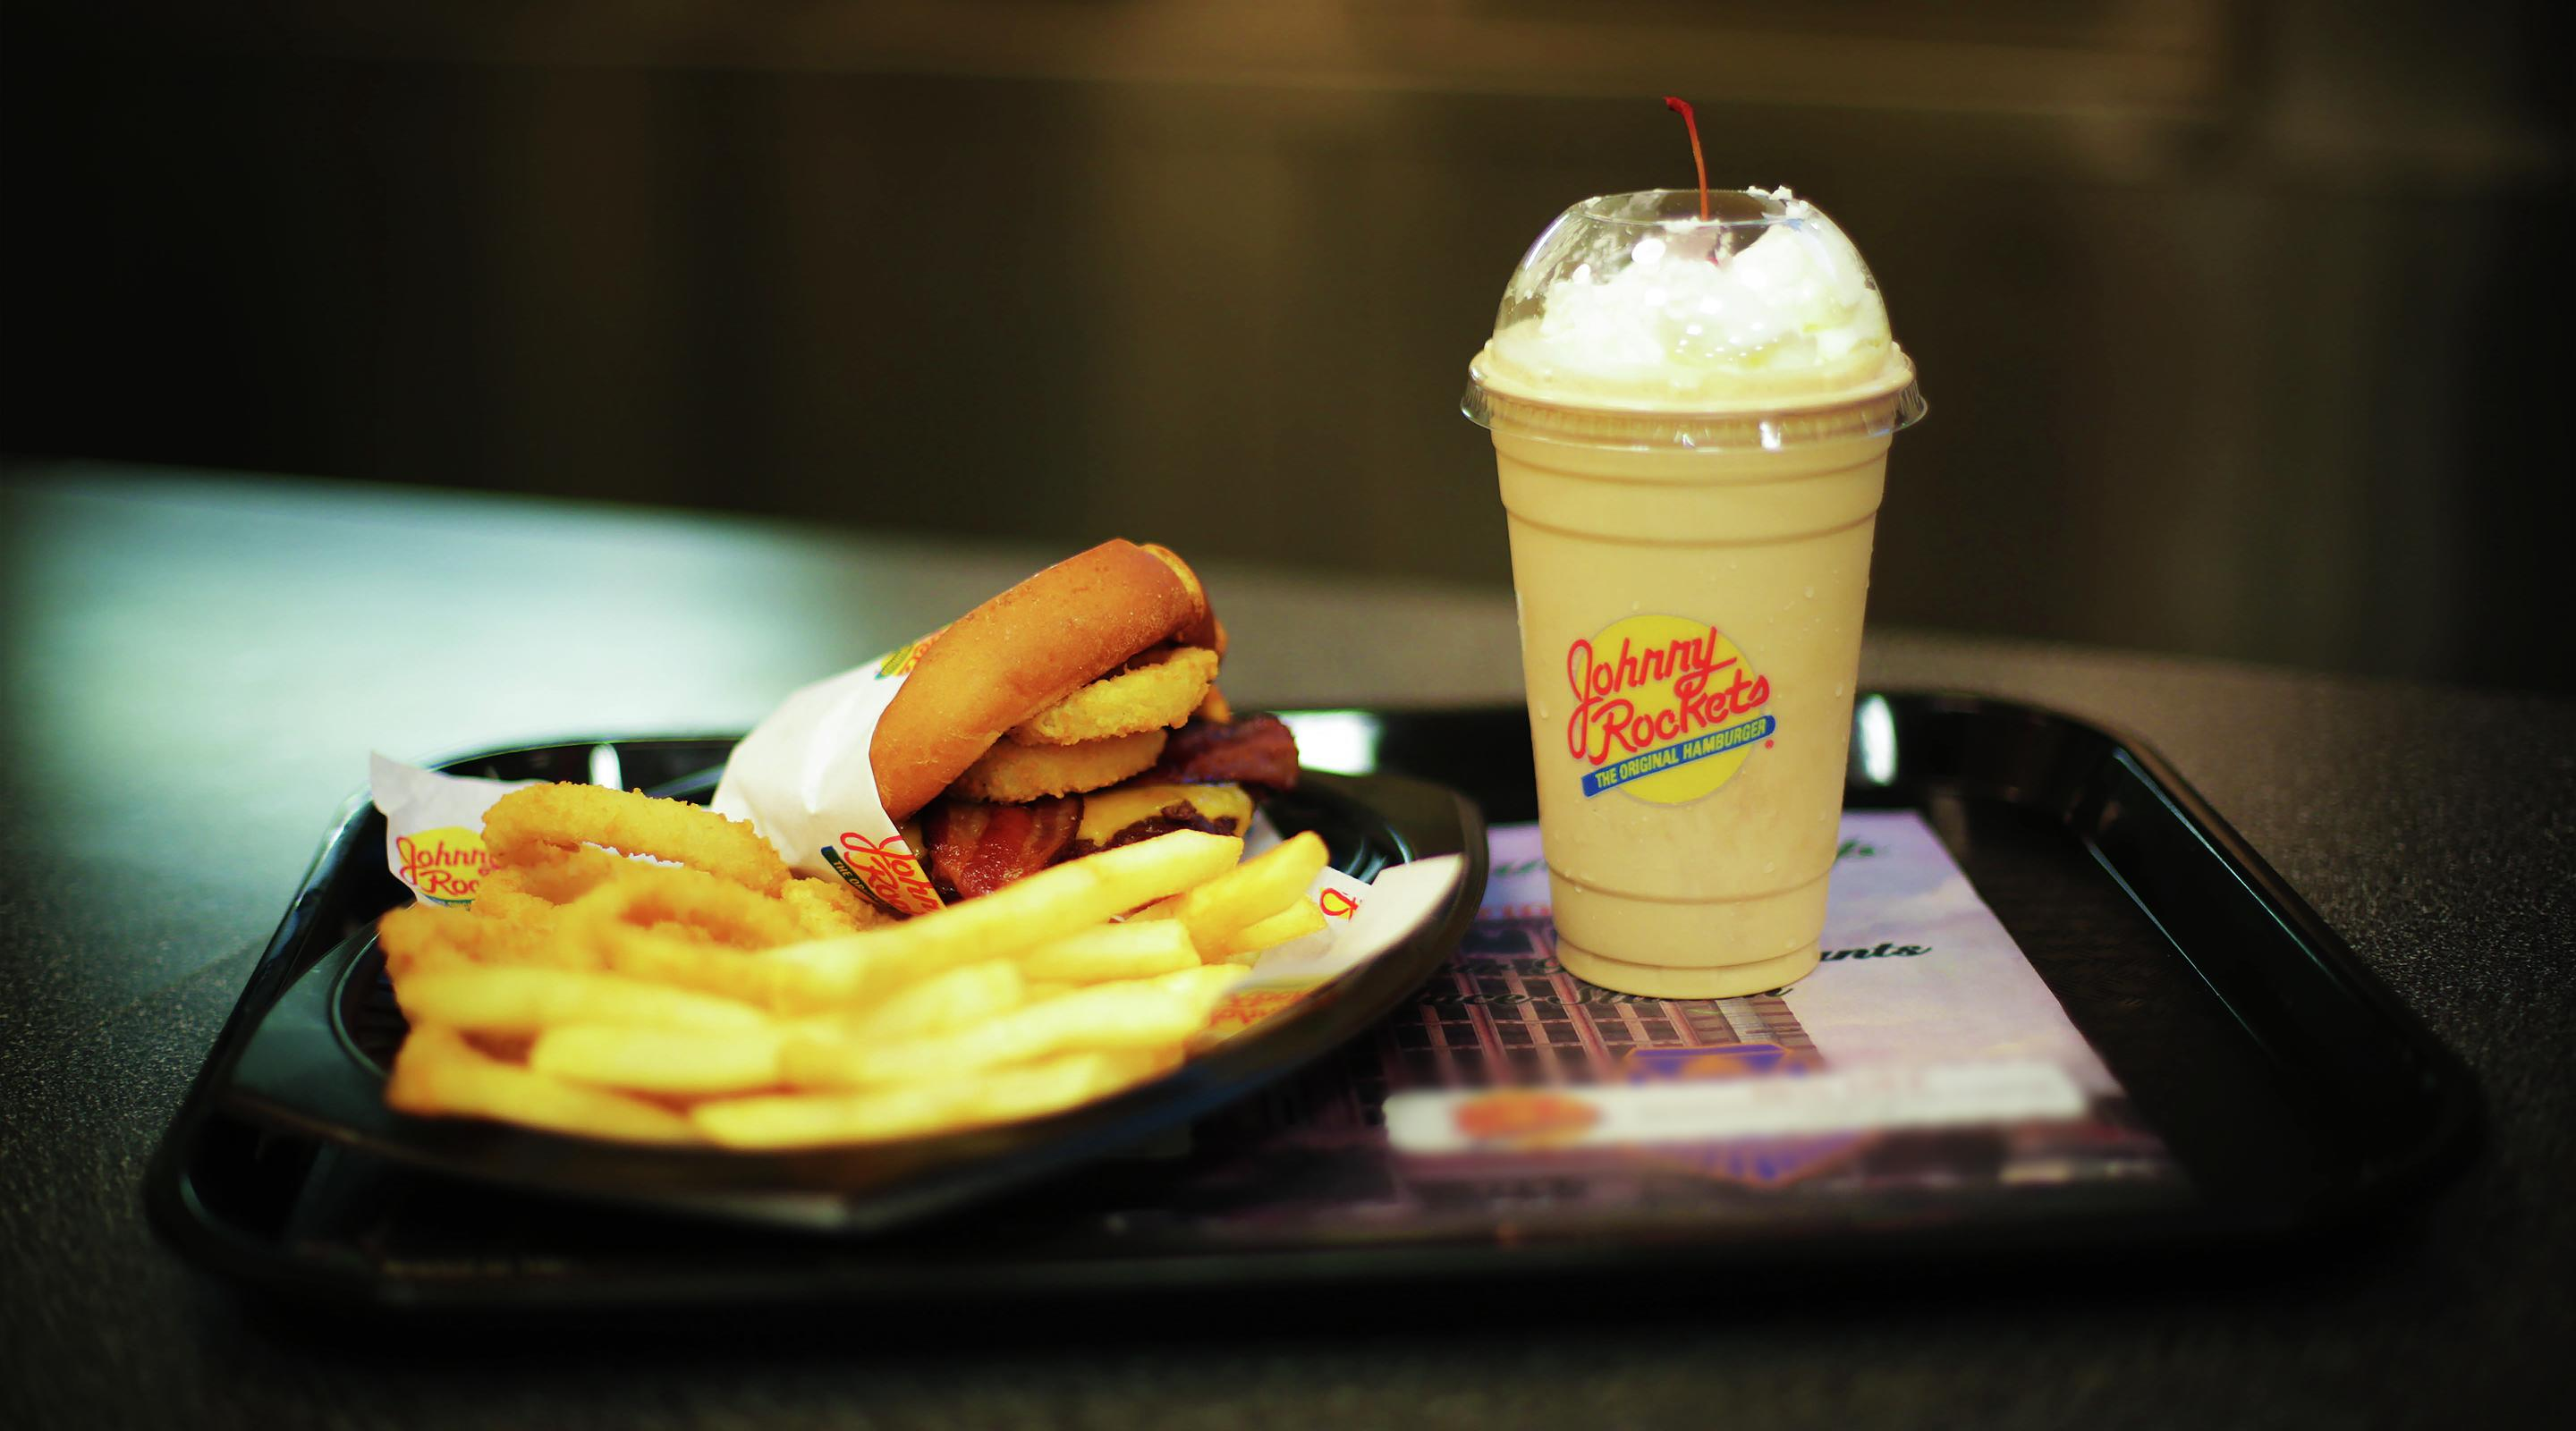 This is an image of Johnny Rockets' burger.